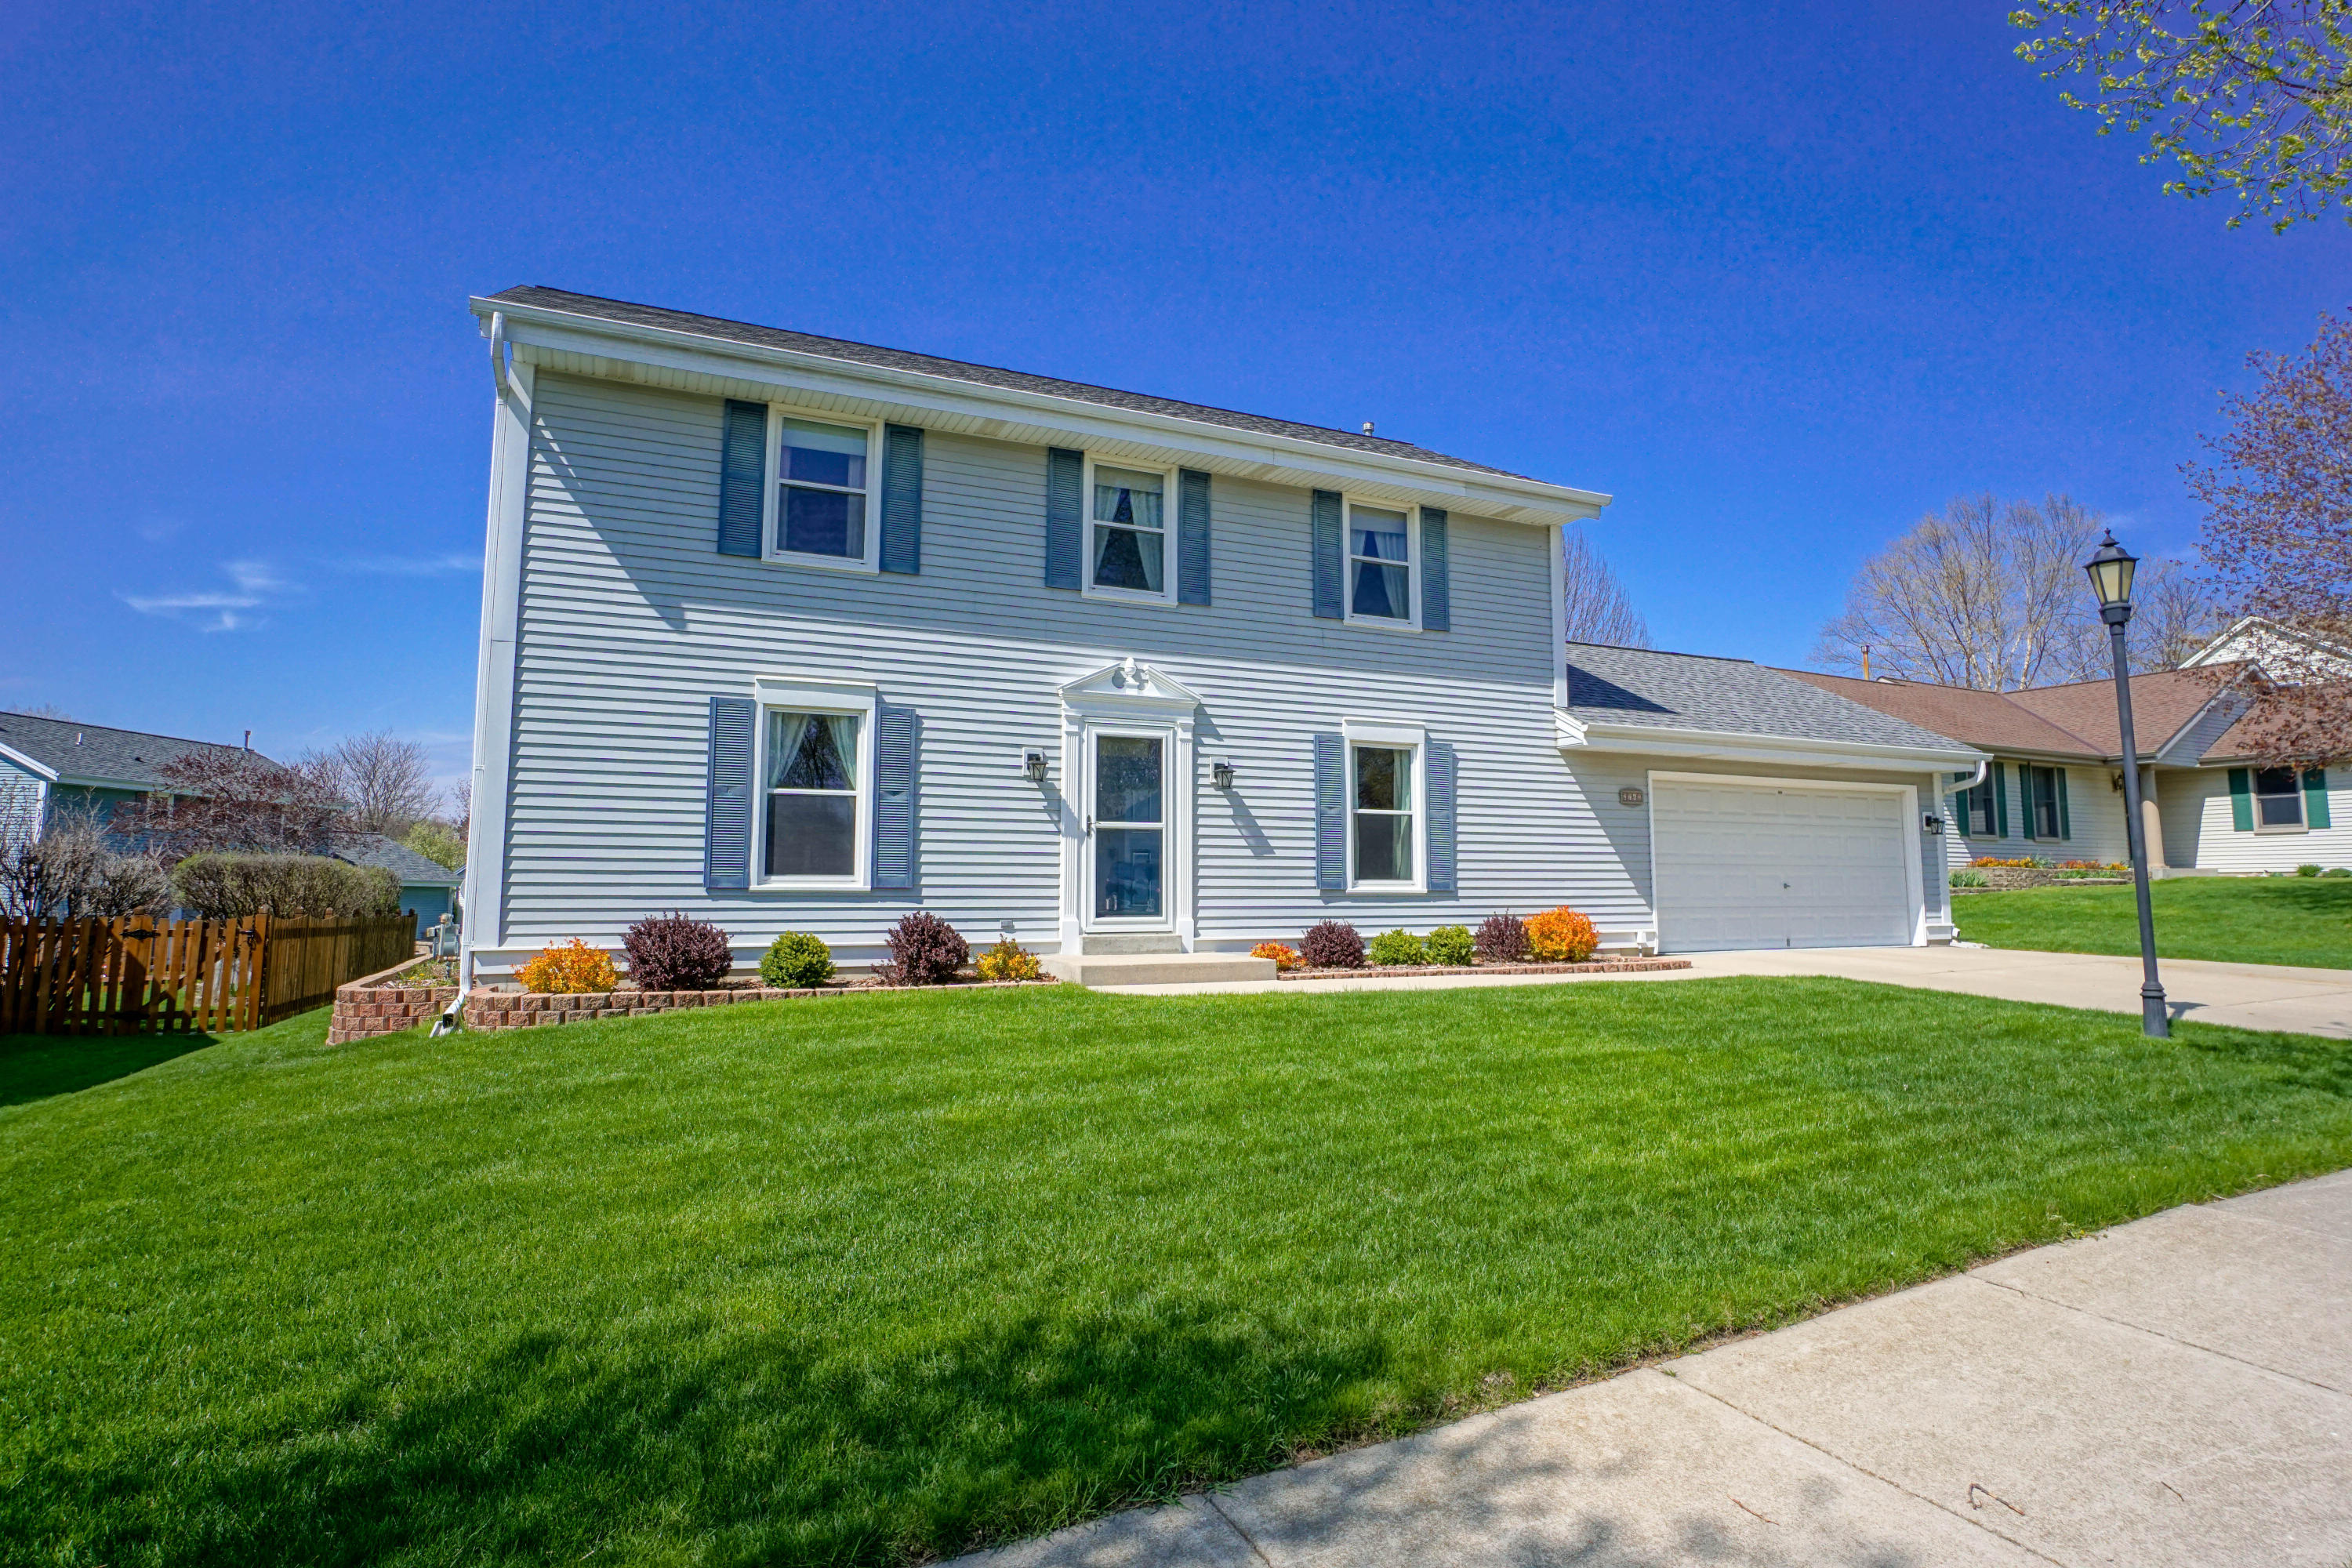 2762 Brighton Dr, Waukesha, Wisconsin 53188, 3 Bedrooms Bedrooms, 6 Rooms Rooms,1 BathroomBathrooms,Single-Family,For Sale,Brighton Dr,1689020